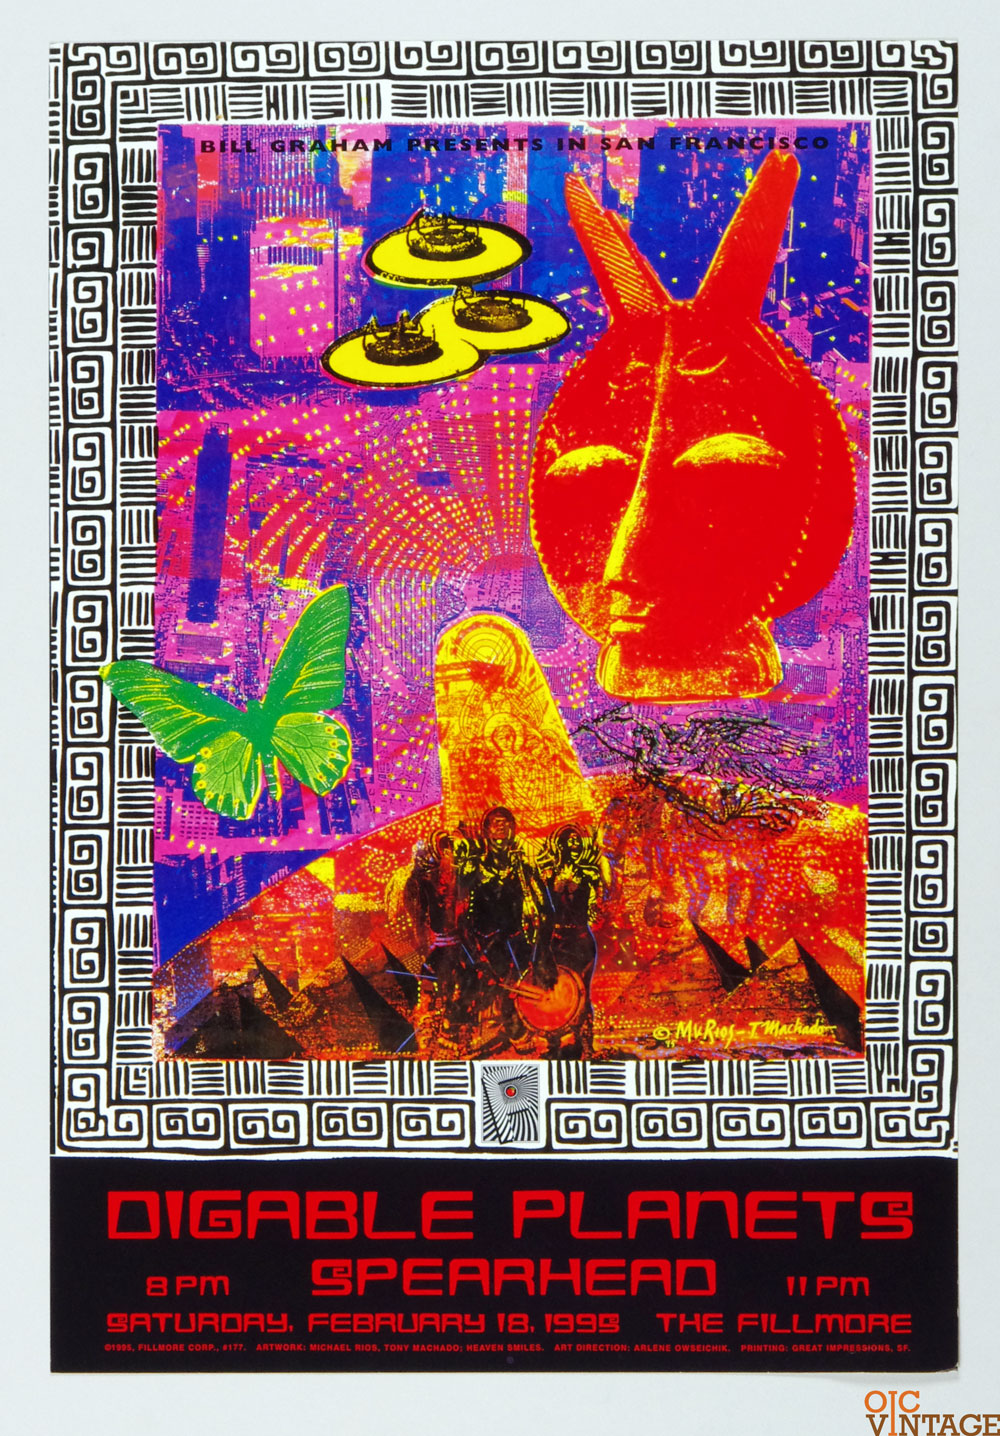 New Fillmore F177 Poster Digable Planets Spearhead 1995 Feb 18